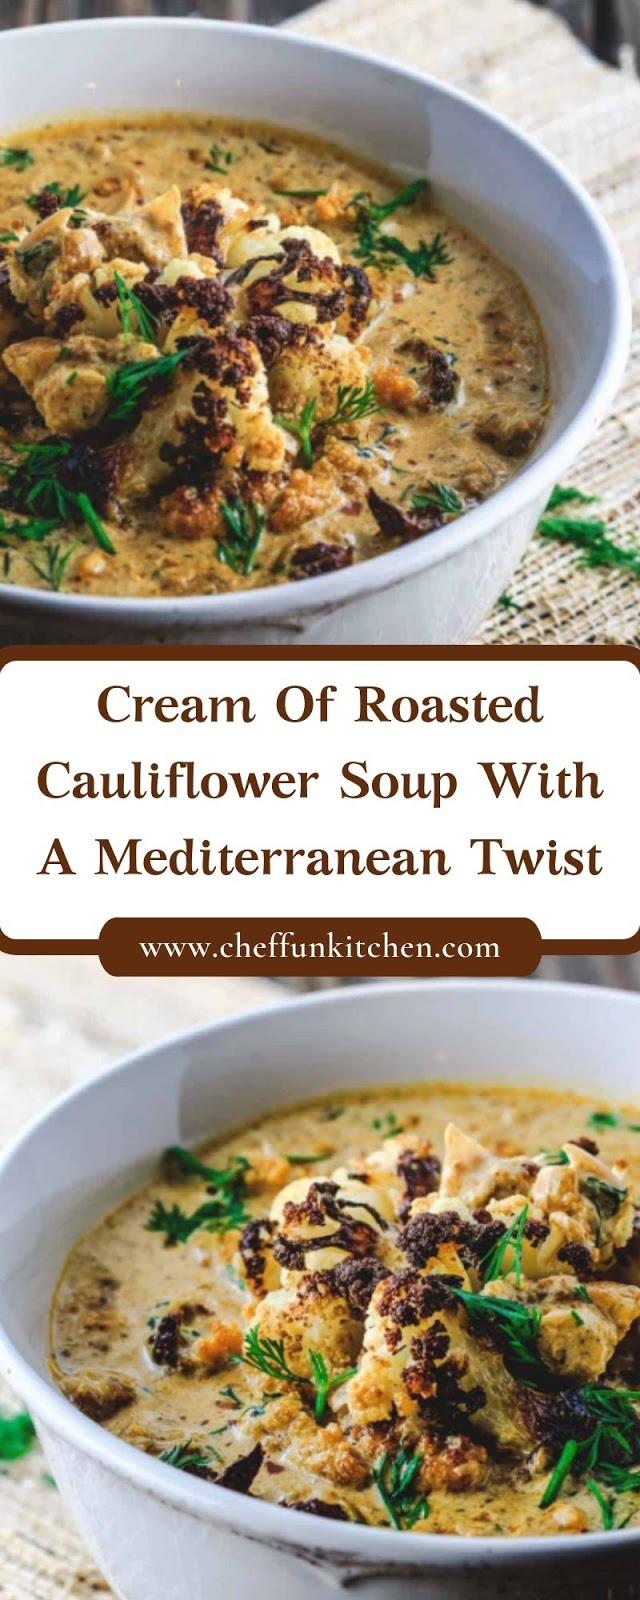 Cream Of Roasted Cauliflower Soup With A Mediterranean Twist